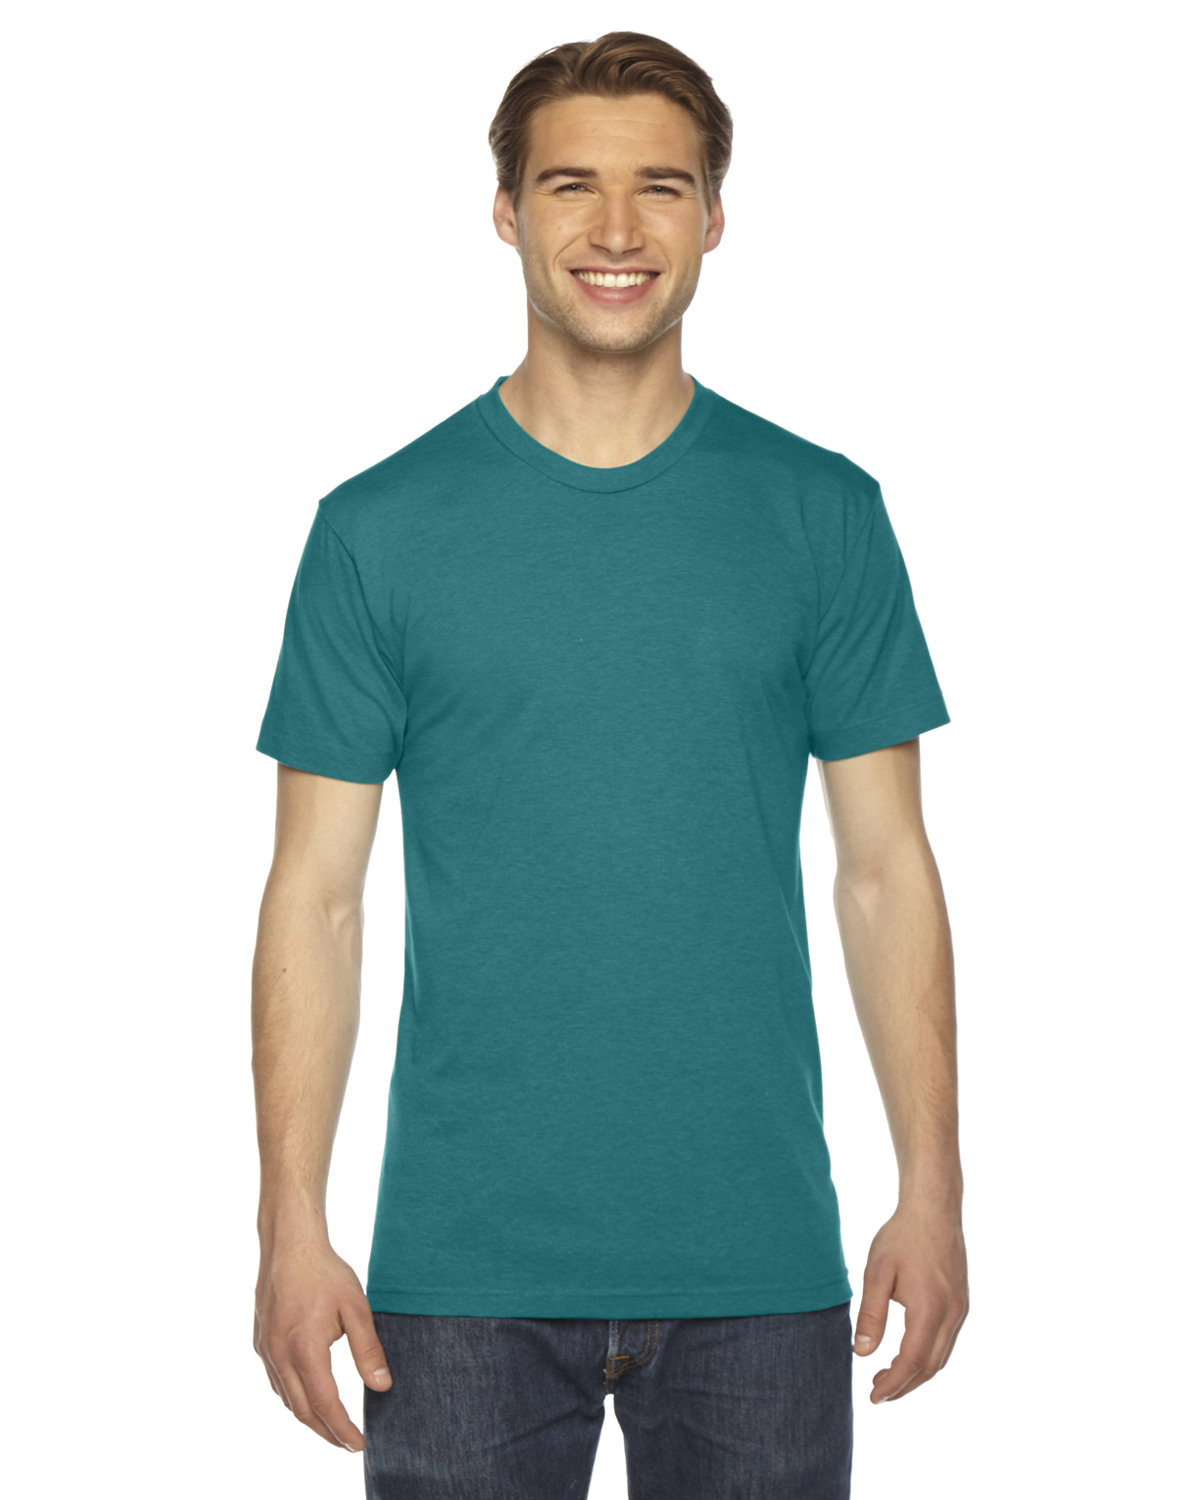 American Apparel Unisex Triblend Short-Sleeve Track T-Shirt TRI EVERGREEN